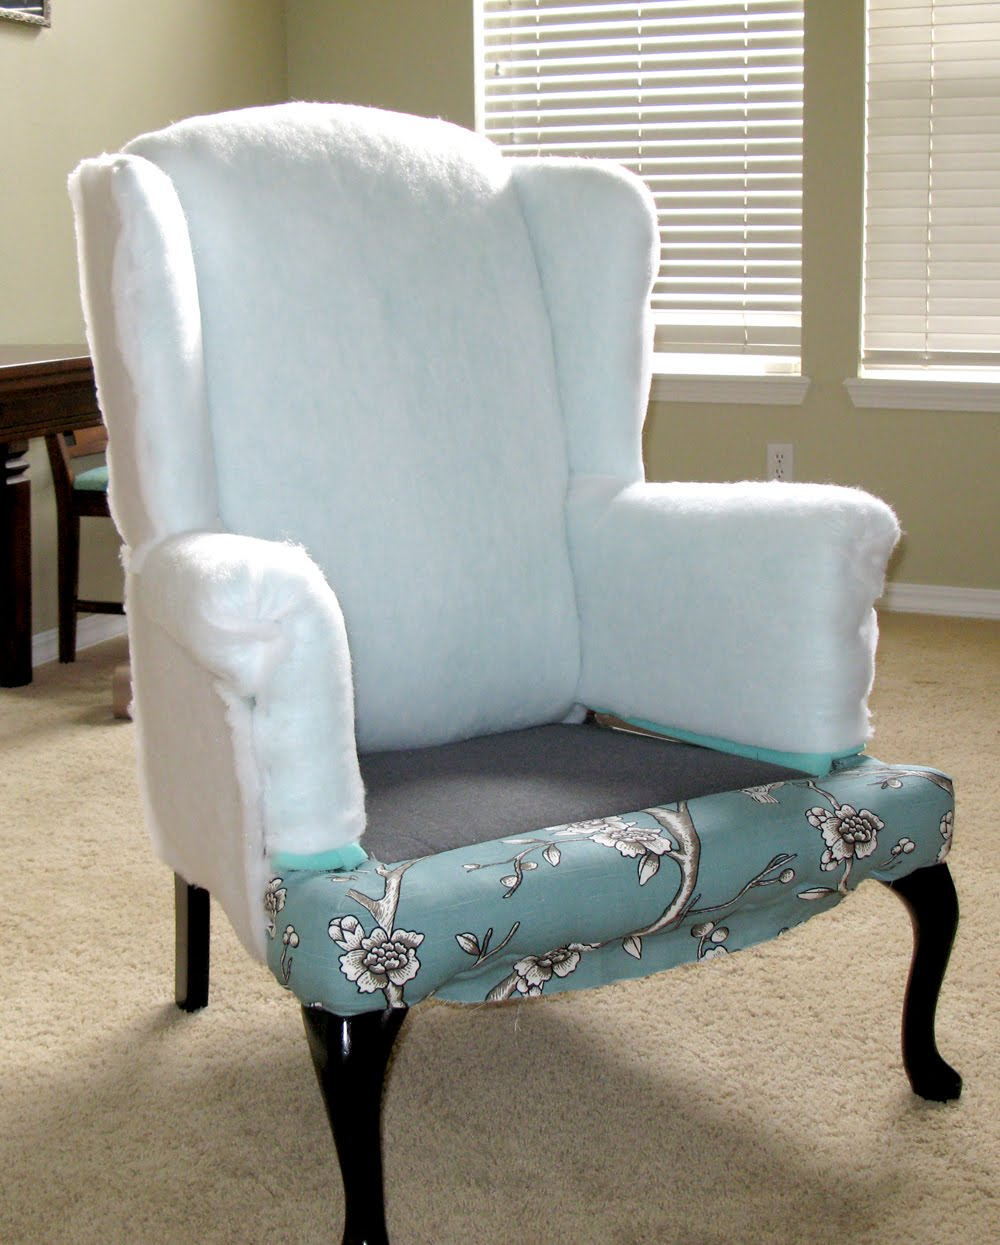 reupholster a chair img